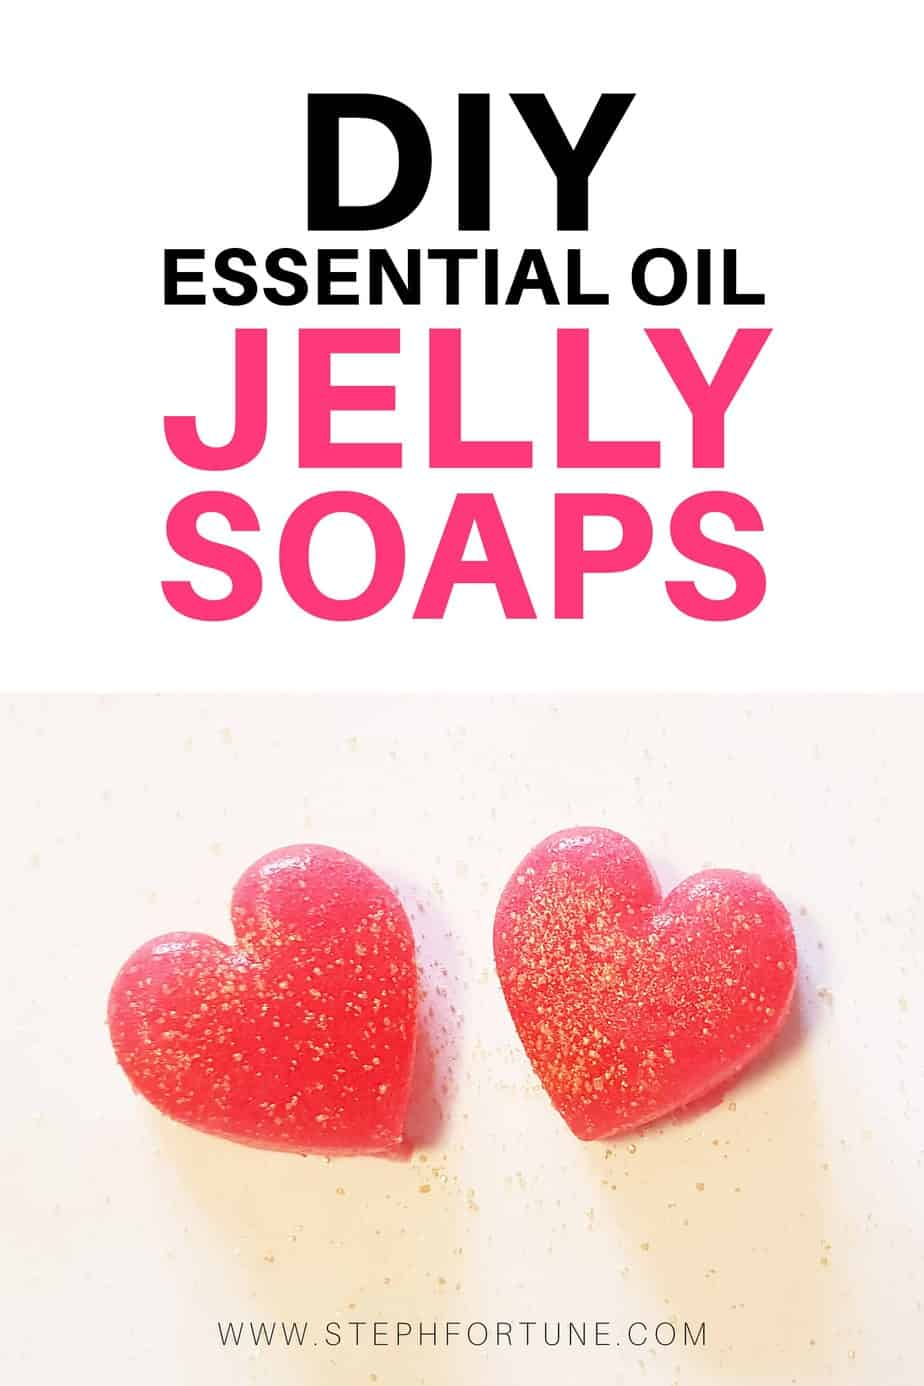 DIY Essential Oil Jelly Soaps for bathtime fun!